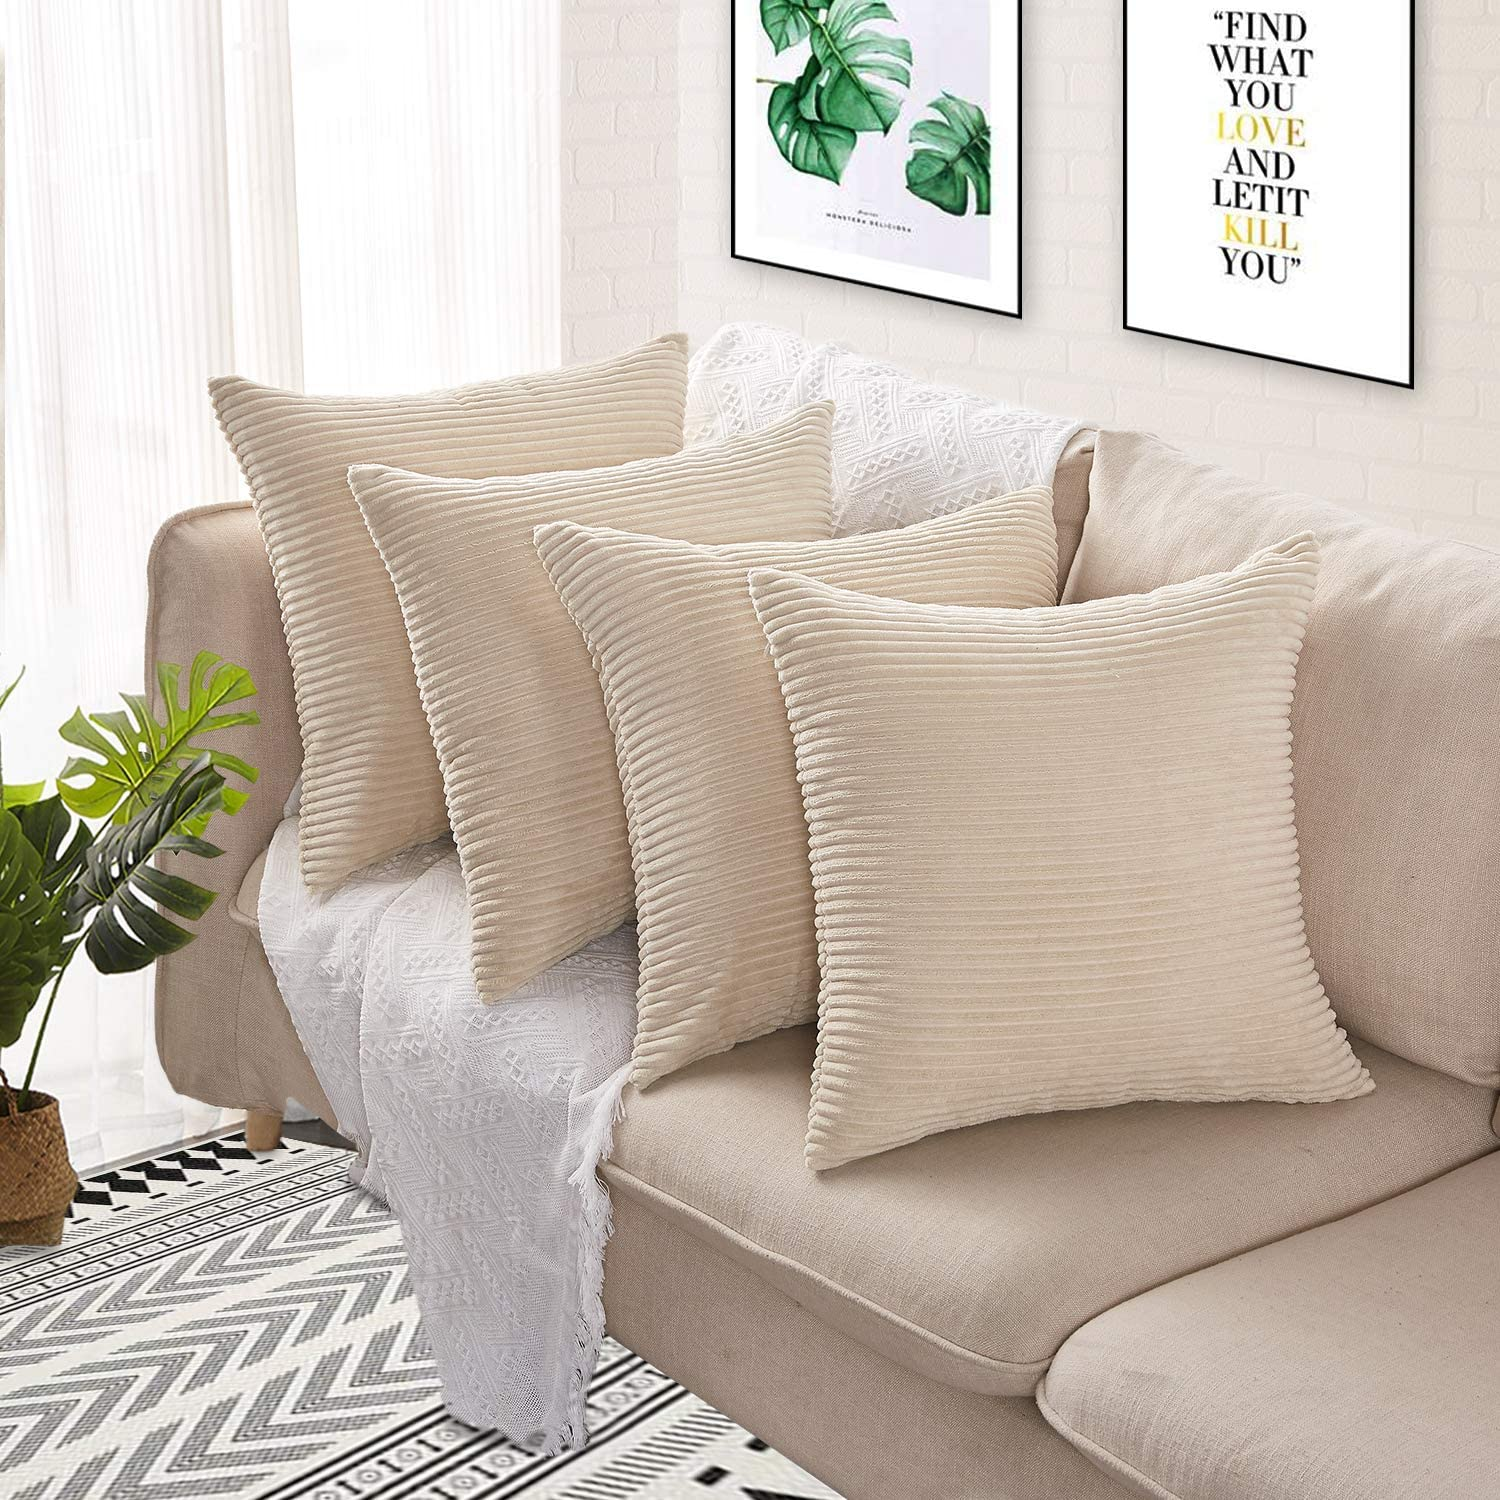 Sofa Renee 4 Pcs Corduroy Throw Pillow Covers Cushion Case, Decorative Square Pillowcase for Couch, Sofa, Bedroom, 20x20 Inch Cream